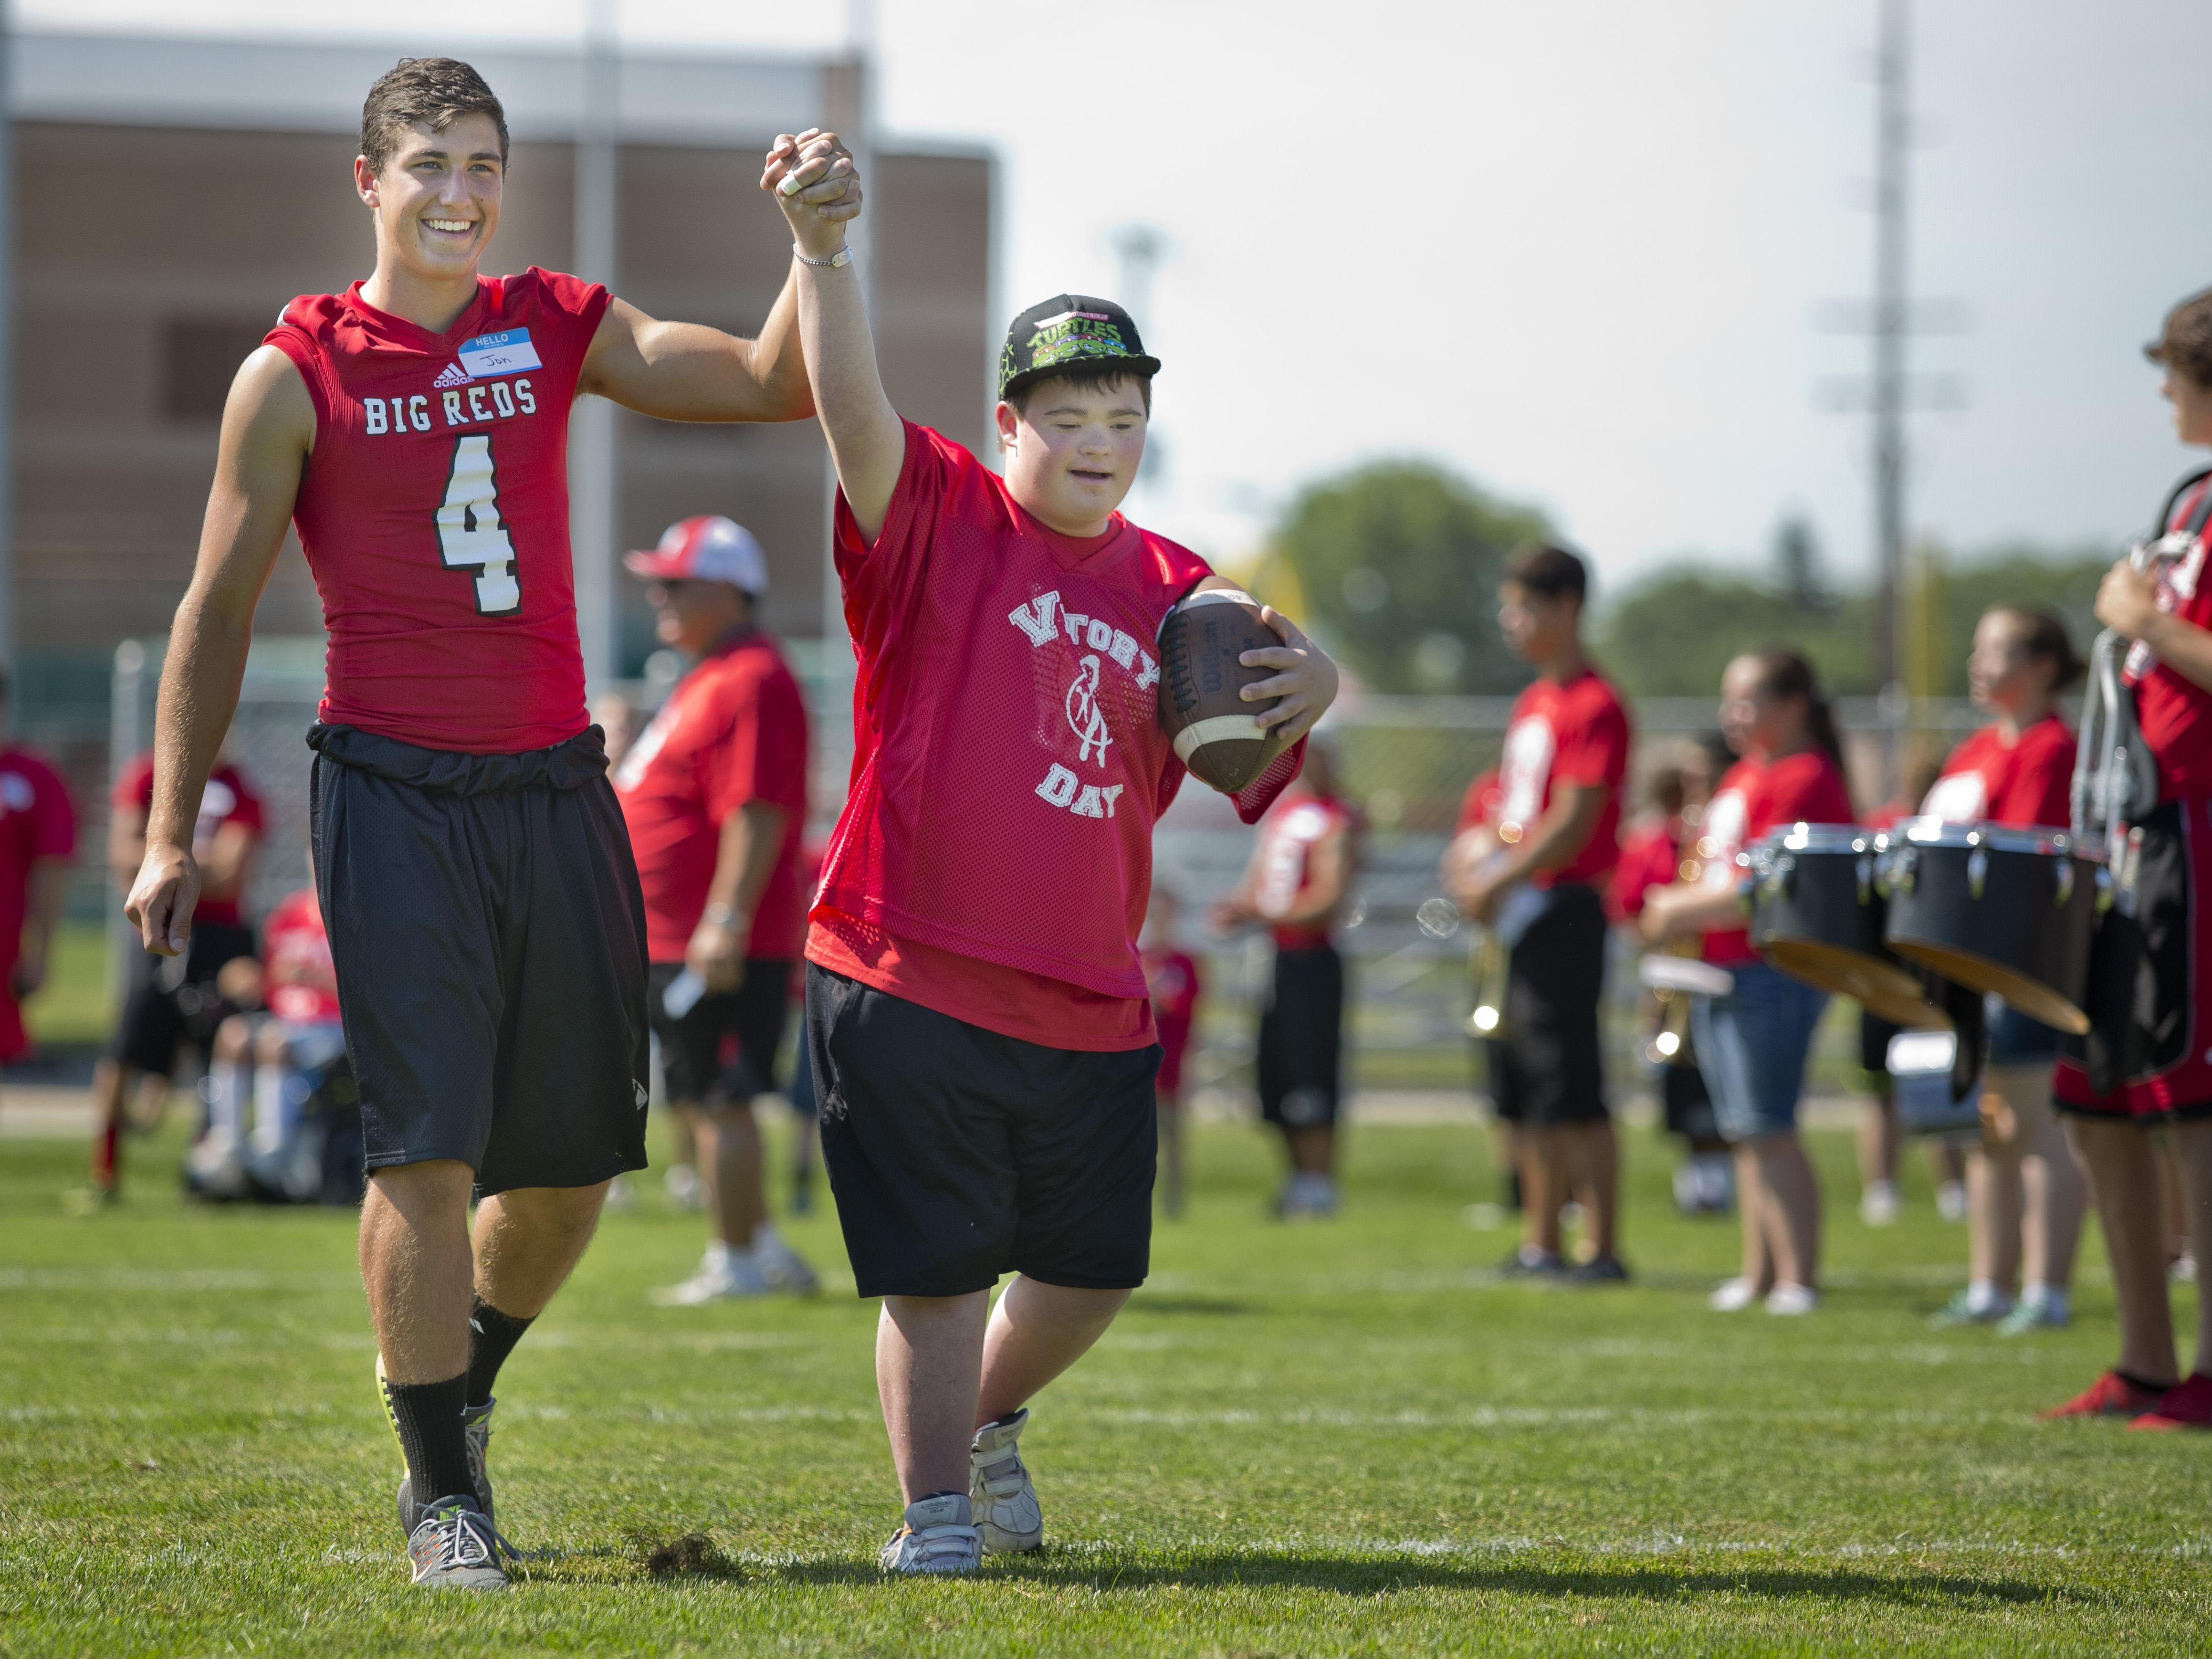 Jon Miller and Cole DiNardo hold up their hands as they are introduced during Victory Day Saturday, August 15, 2015 in Memorial Stadium at Port Huron High School. The event paired special needs students with mentors from the football and cheerleading teams.